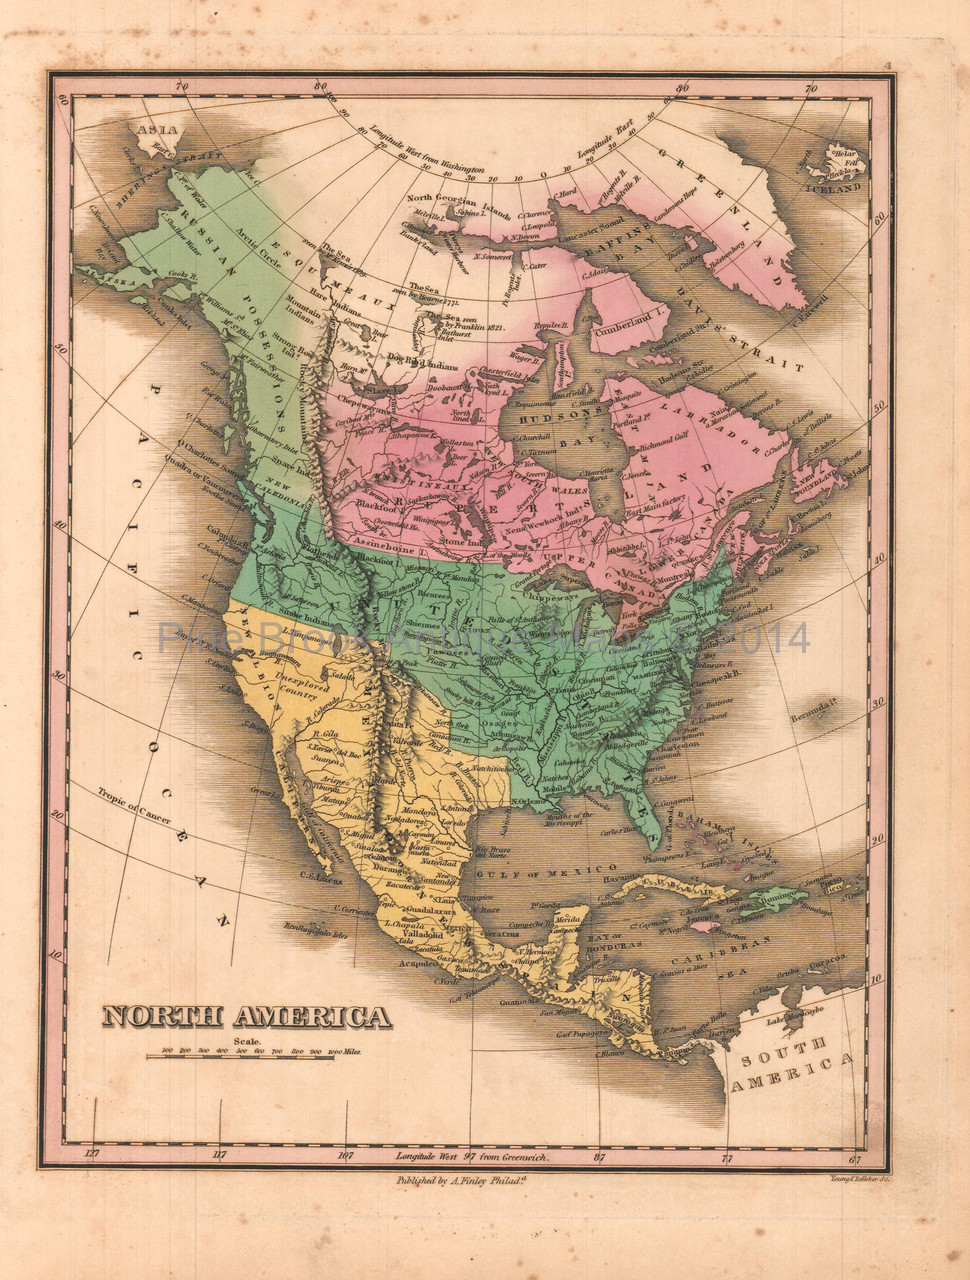 Antique Map Of North America.North America Antique Map Anthony Finley 1824 Pine Brook Antique Maps